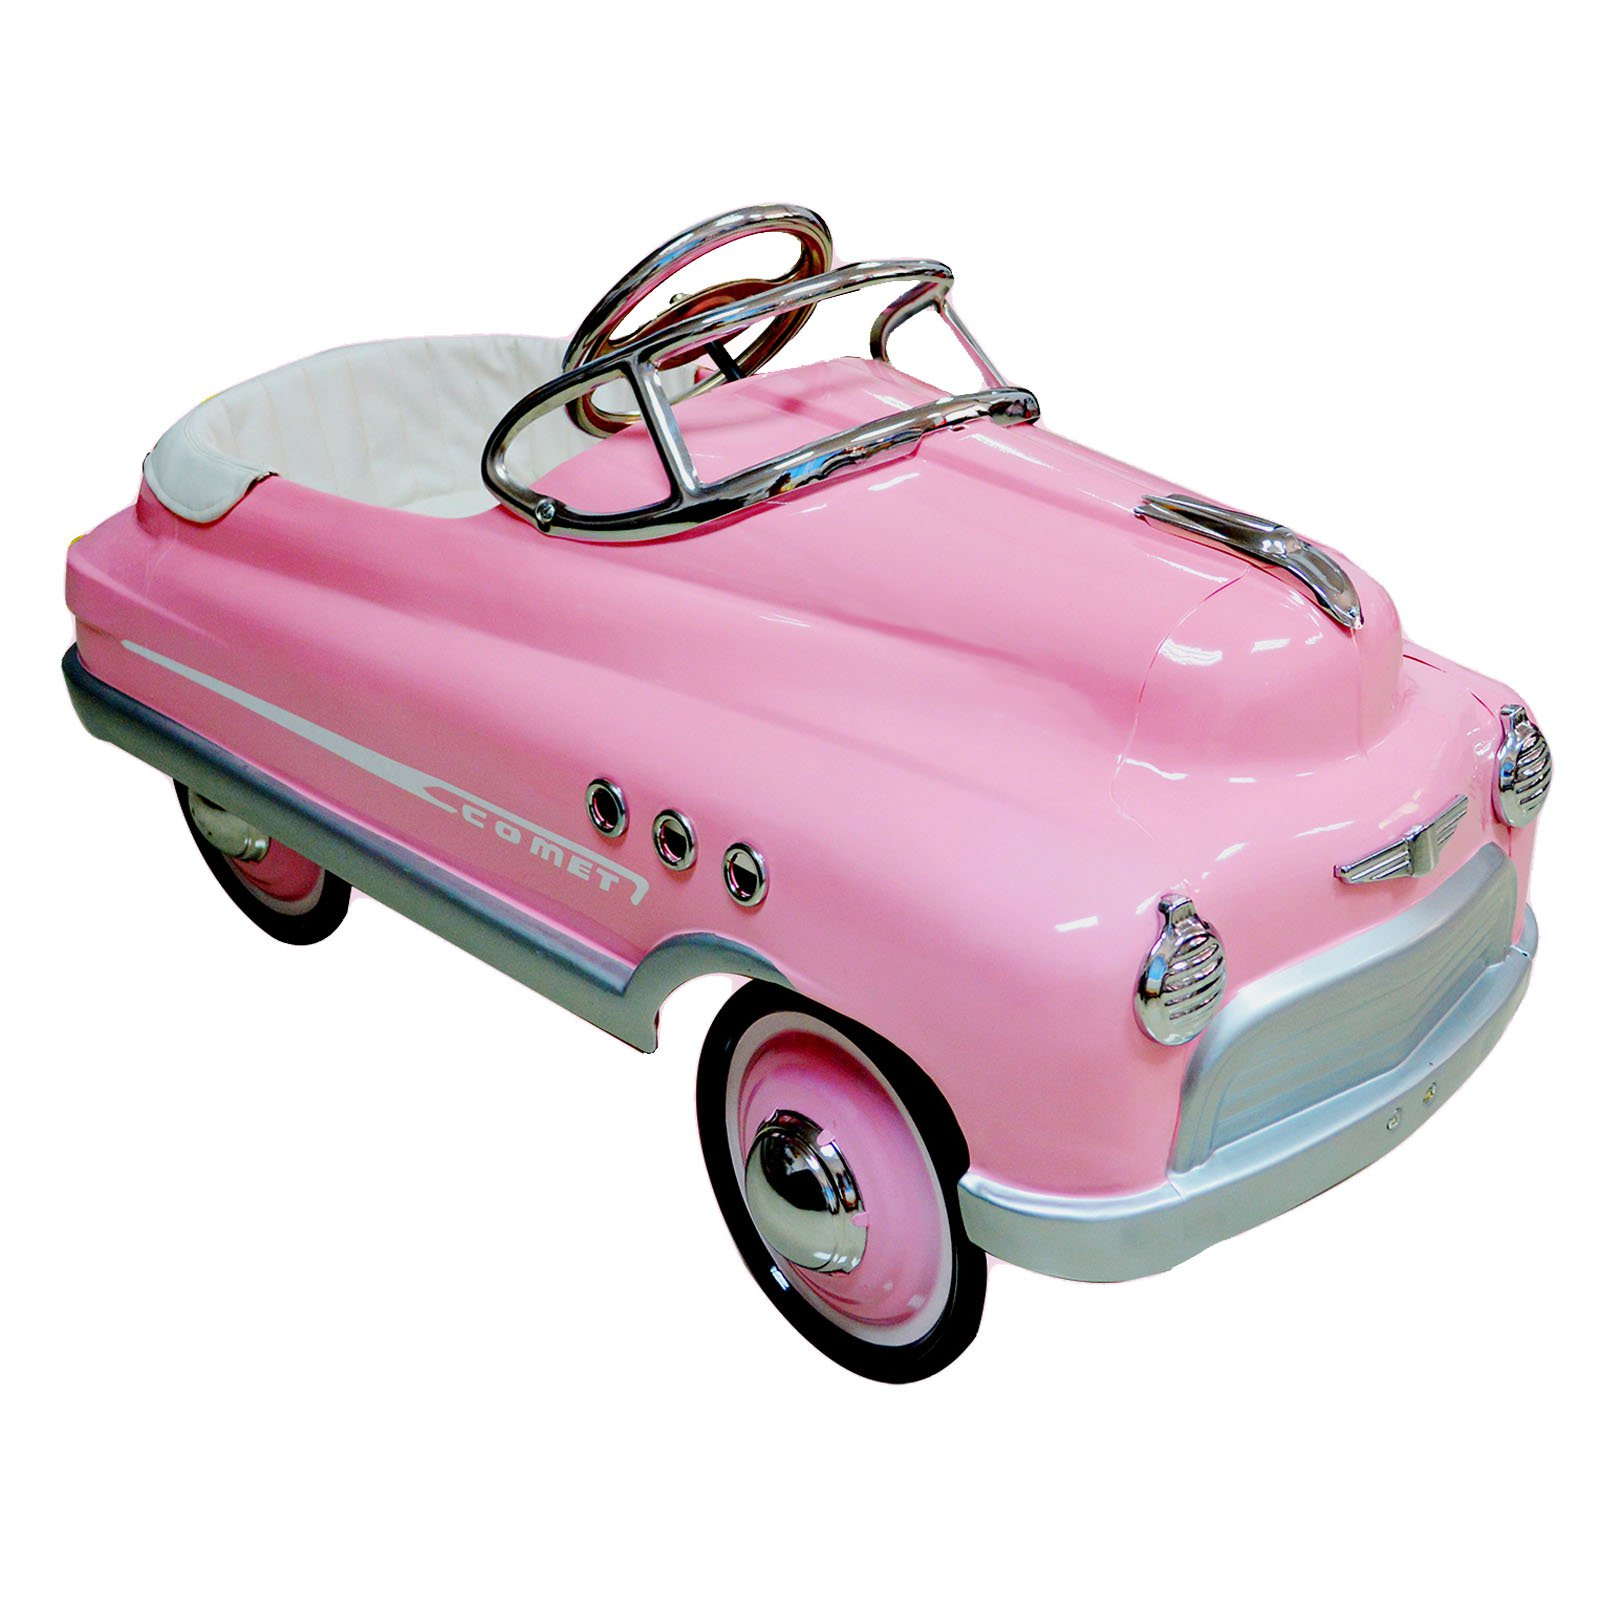 Airflow Collectibles Pink Comet Car Pedal Riding Toy